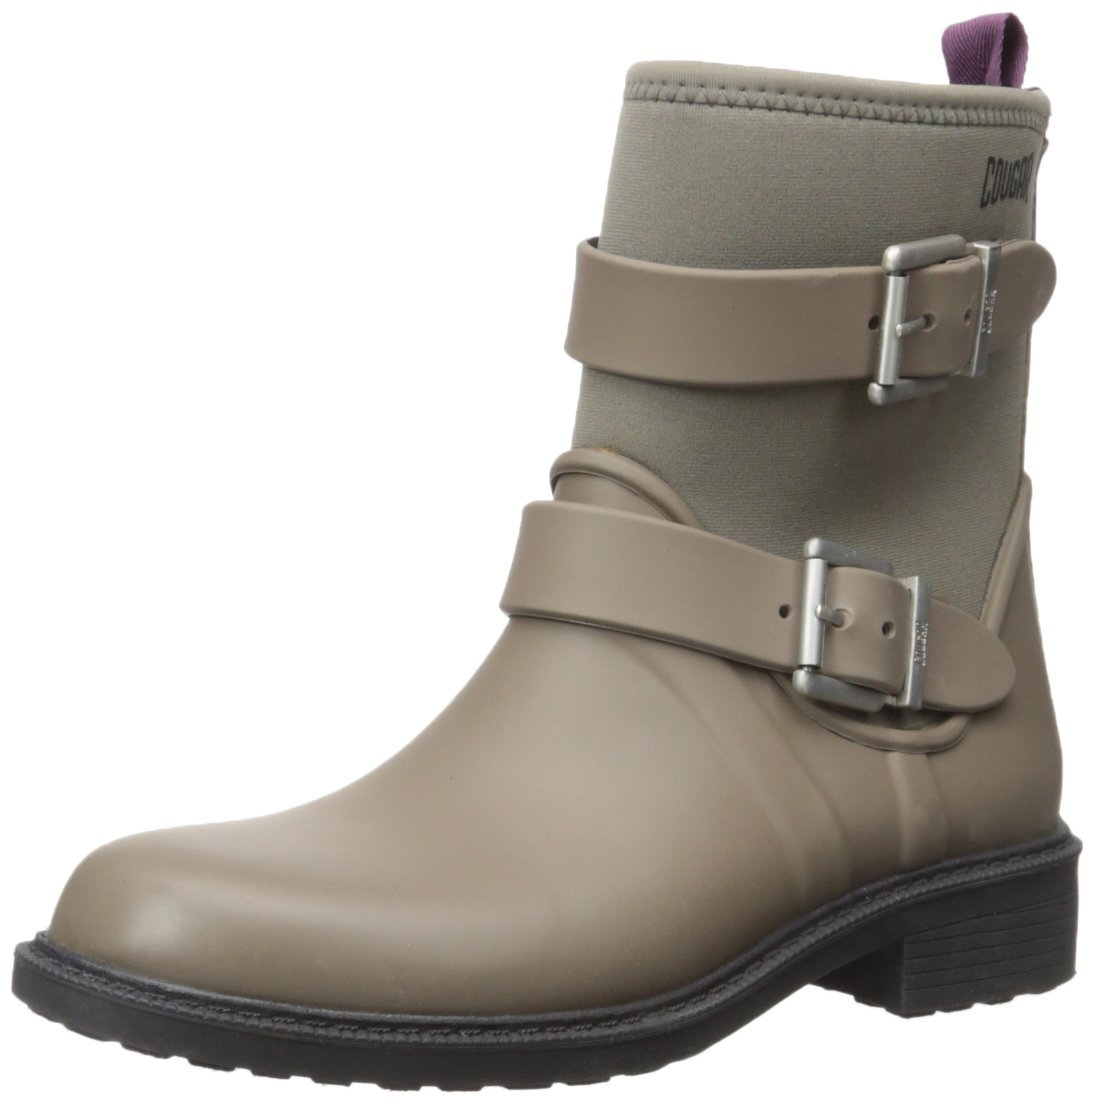 Cougar Women's Kirby Rain Boot, Taupe, 10 M US